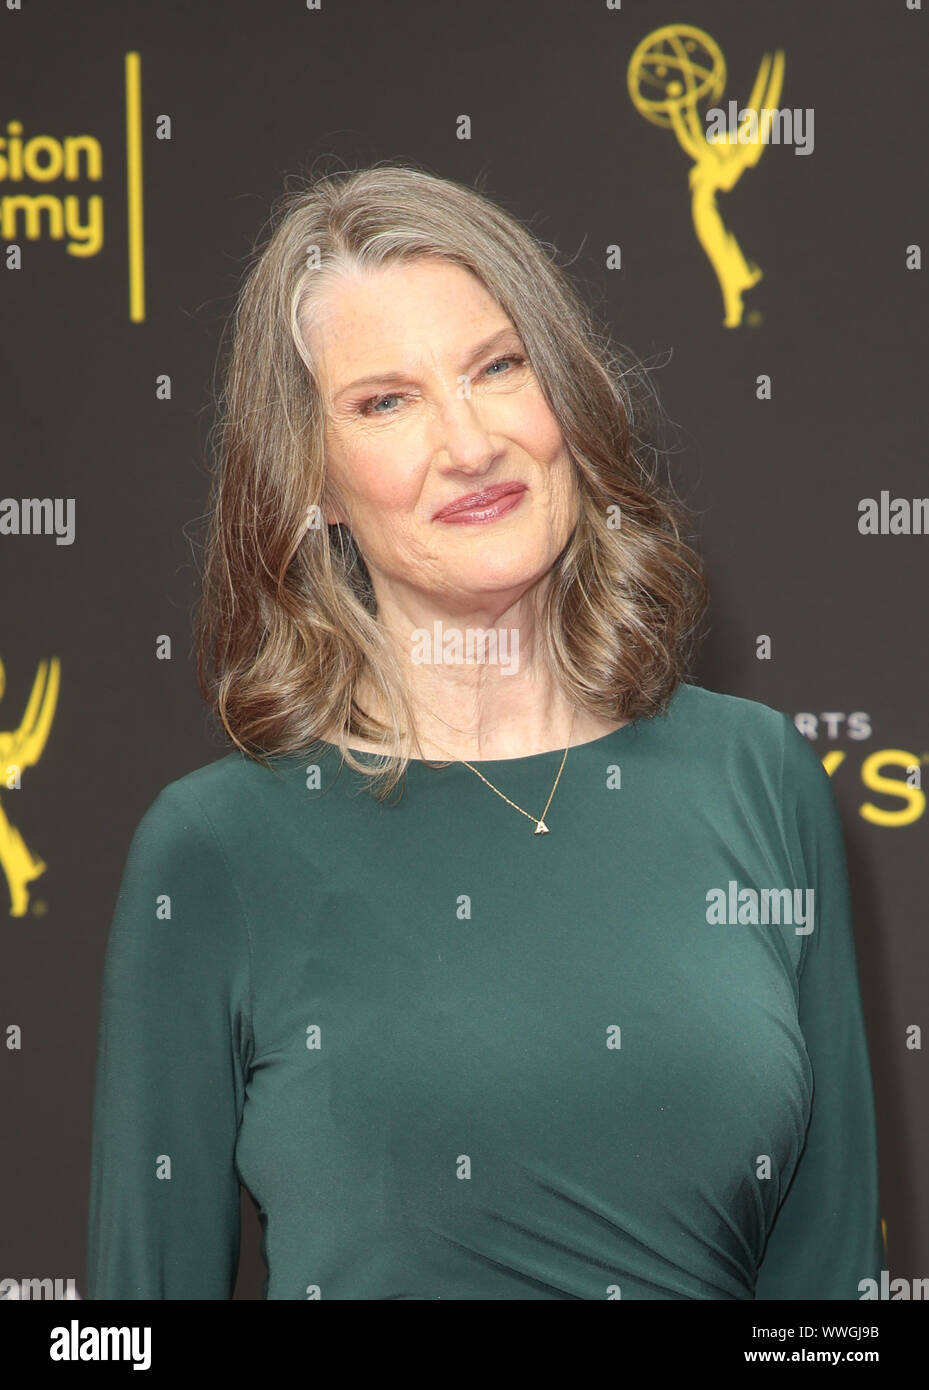 LOS ANGELES, CA - SEPTEMBER 514: Annette O'Toole, at 2019 Creative Arts Emmy Awards Day 2 at The Microsoft Theater in Los Angeles, California on September 15, 2019. Credit: Faye Sadou/MediaPunch Stock Photo